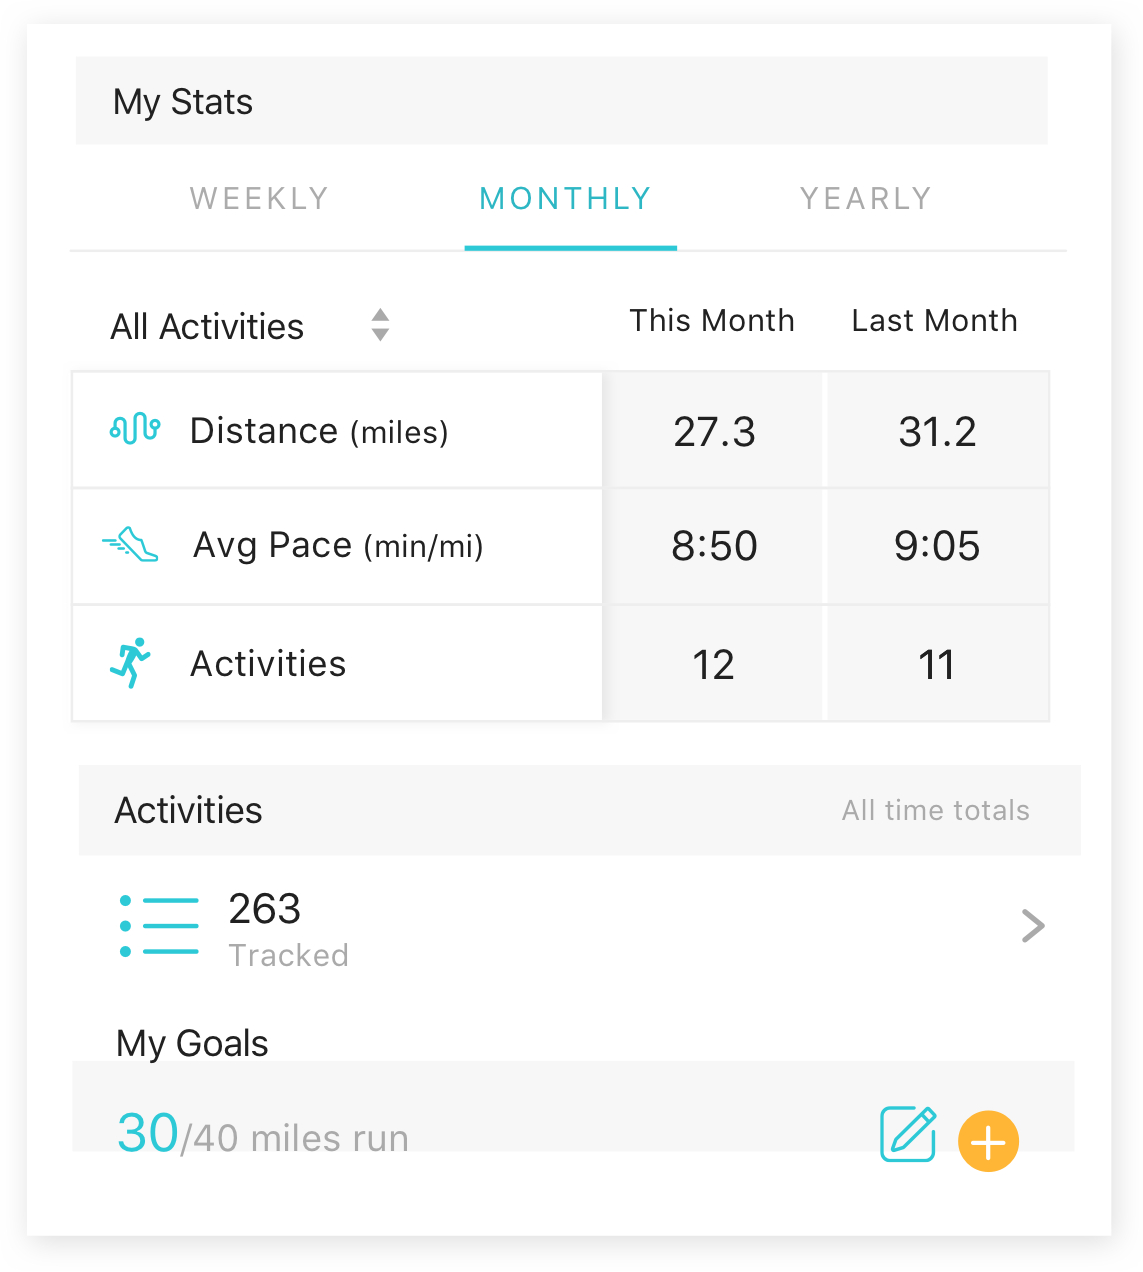 A screenshot of running stats from the Runkeeper app, including distance, pace, and activities.